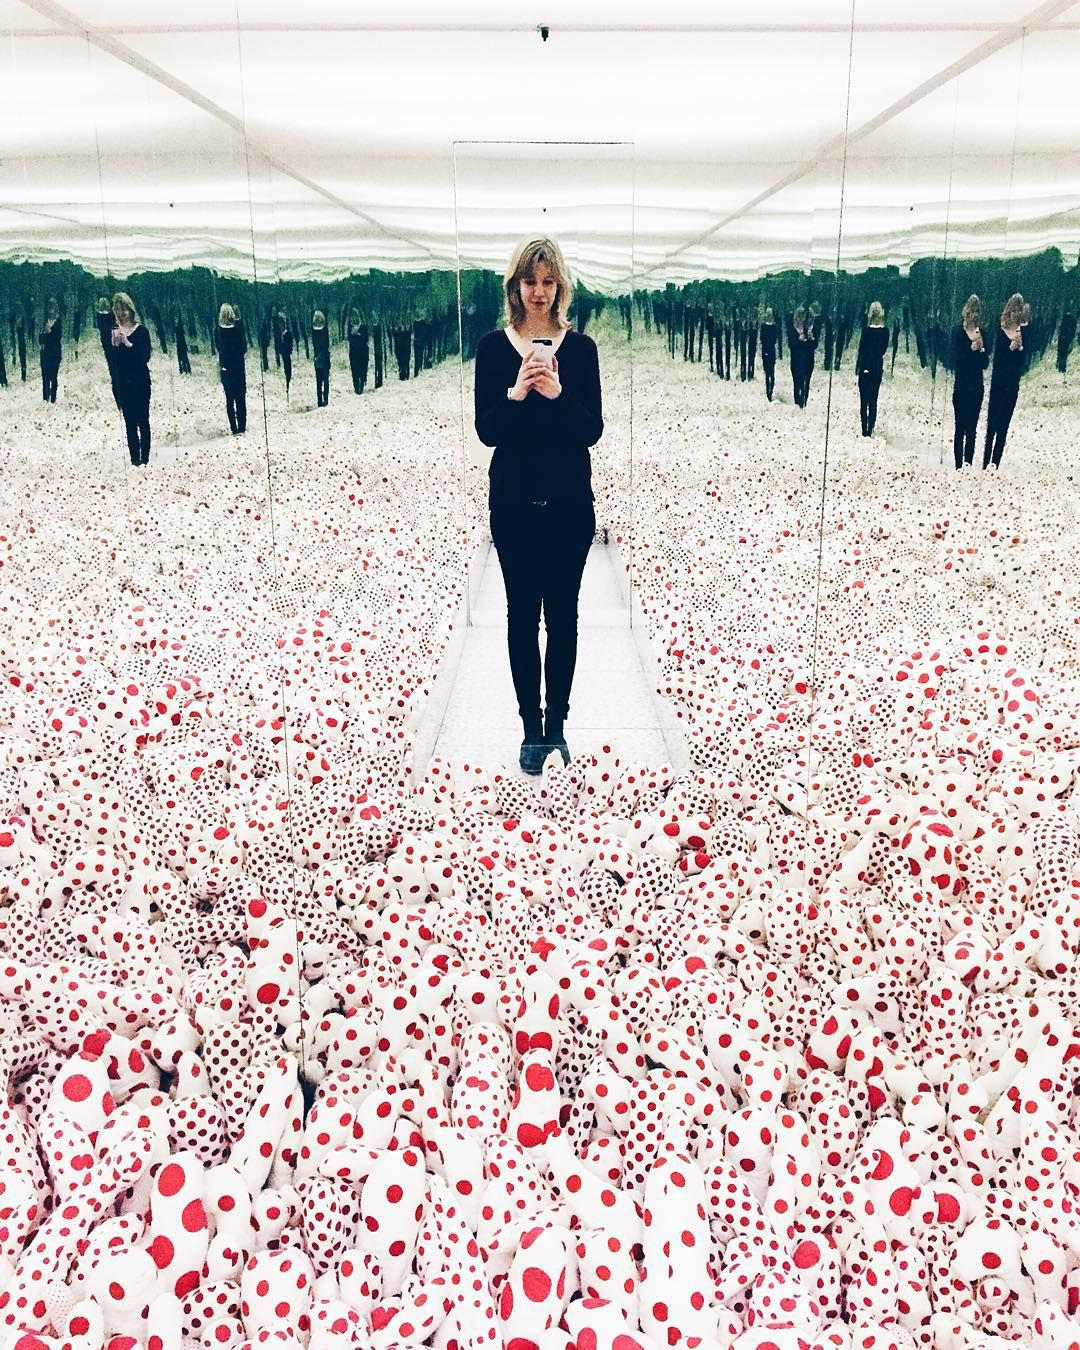 Mirror Room: This Infinity Mirror Room By Yayoi Kusama Was Asking For A